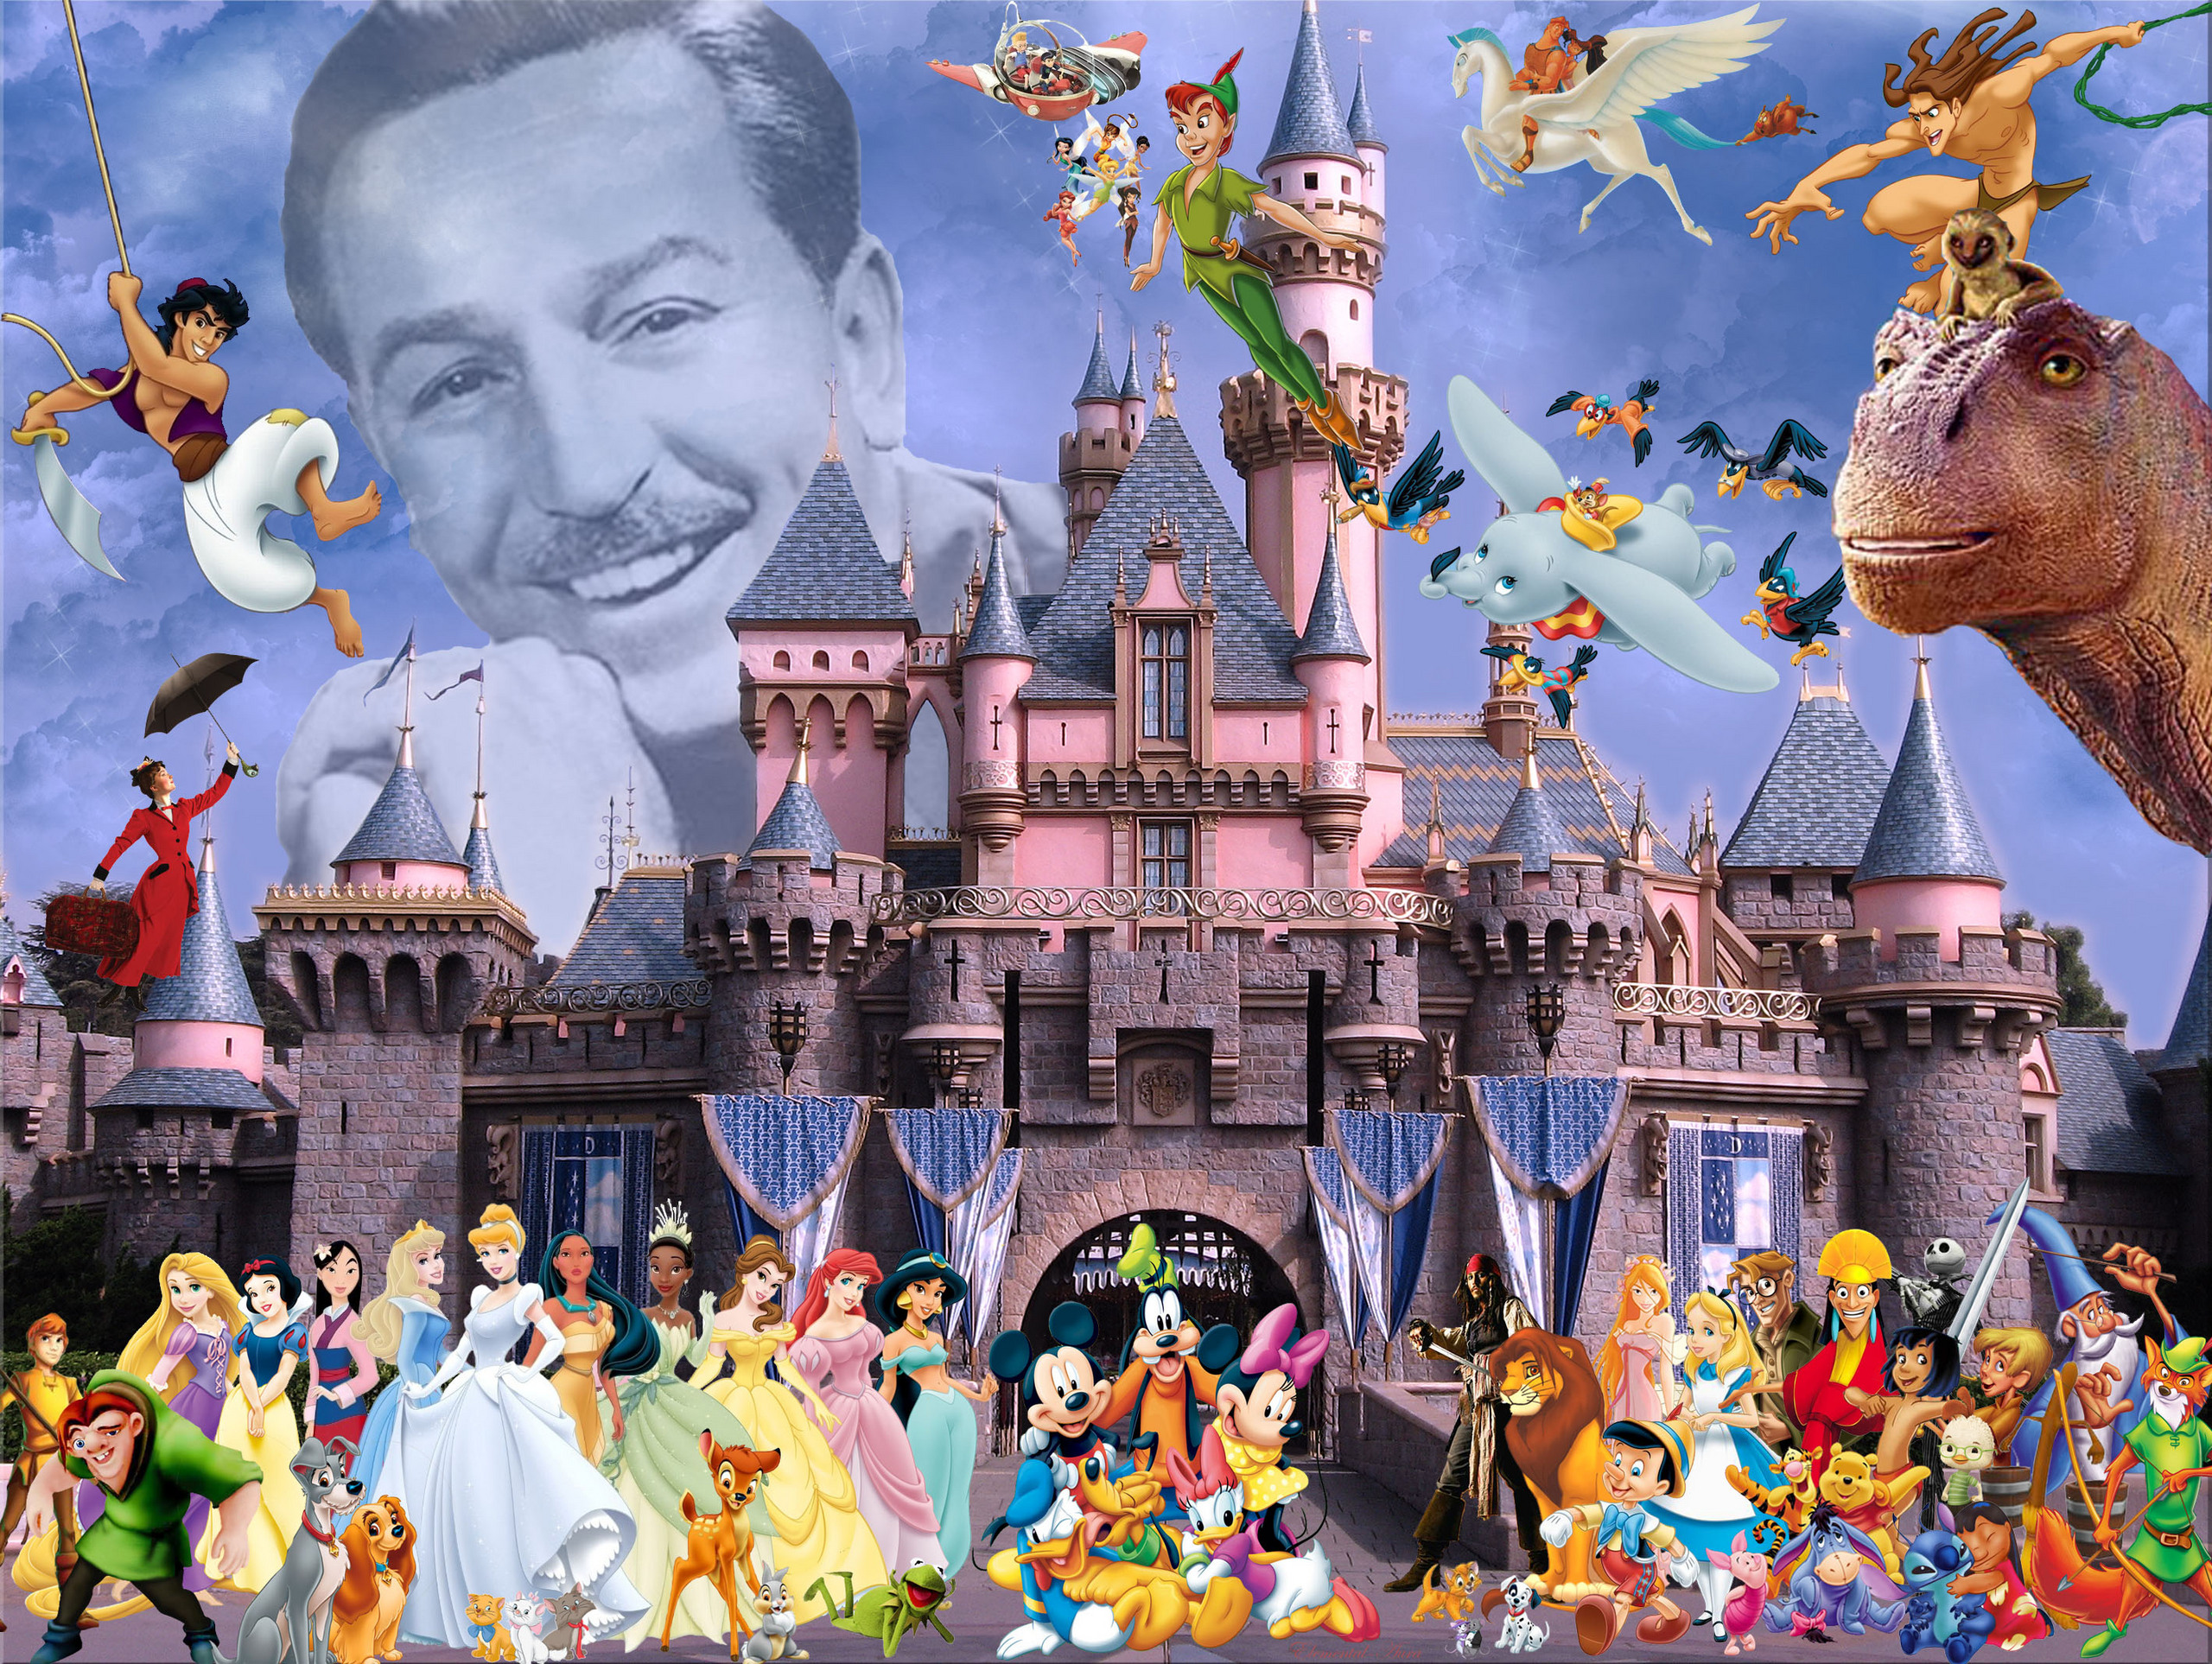 how walt disney revolutionized the world of animation Walter elias walt disney december 5, 1901 - december 15, 1966)was an american entrepreneur, cartoonist, animator, voice actor, and film producer as a prominent figure within the american animation industry and throughout the world, he is regarded as a cultural icon, he's known for his influence and contributions to entertainment during the 20th century.